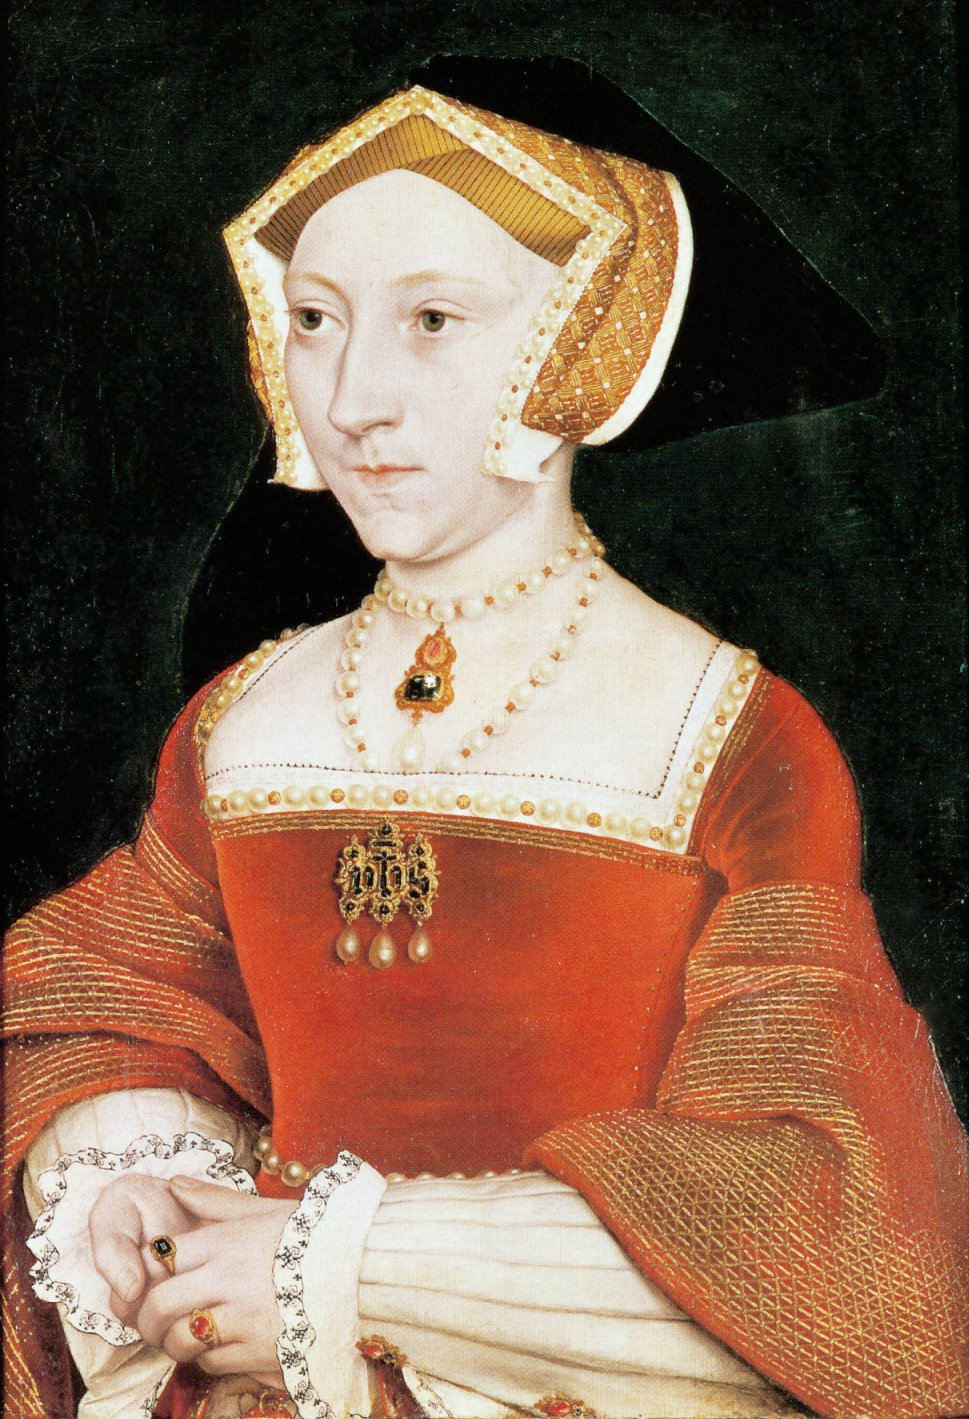 Portrait of Jane Seymour, third wife of Henry VIII, executed in the workshop of Hans Holbein the Younger. c.1540